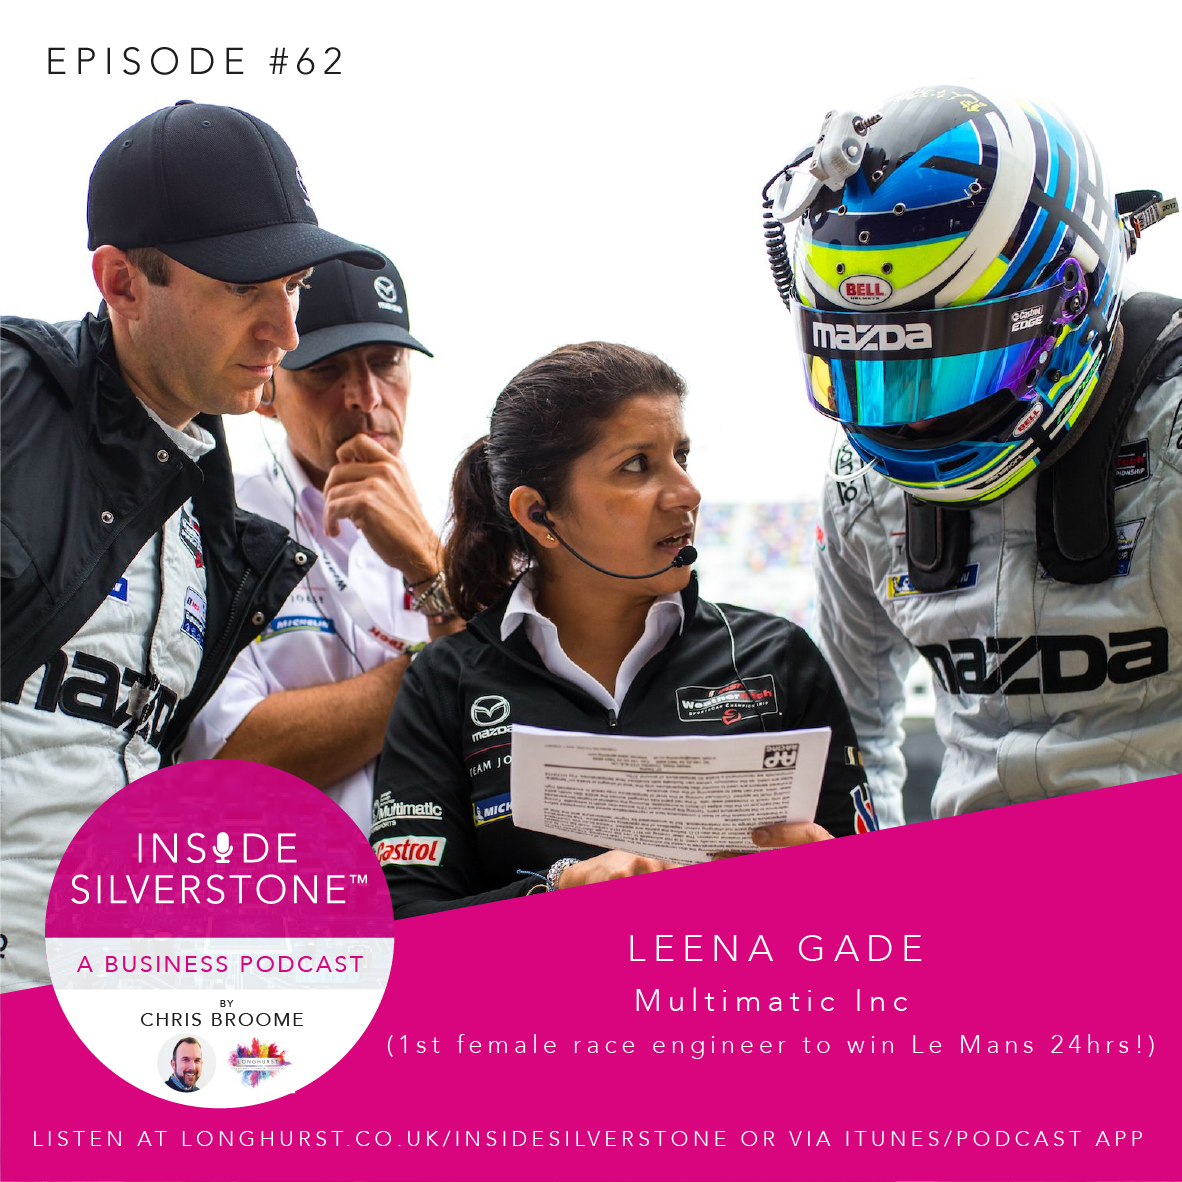 Leena Gade - Multimatic Inc & the 1st Female Race Engineer to win Le Mans 24hr